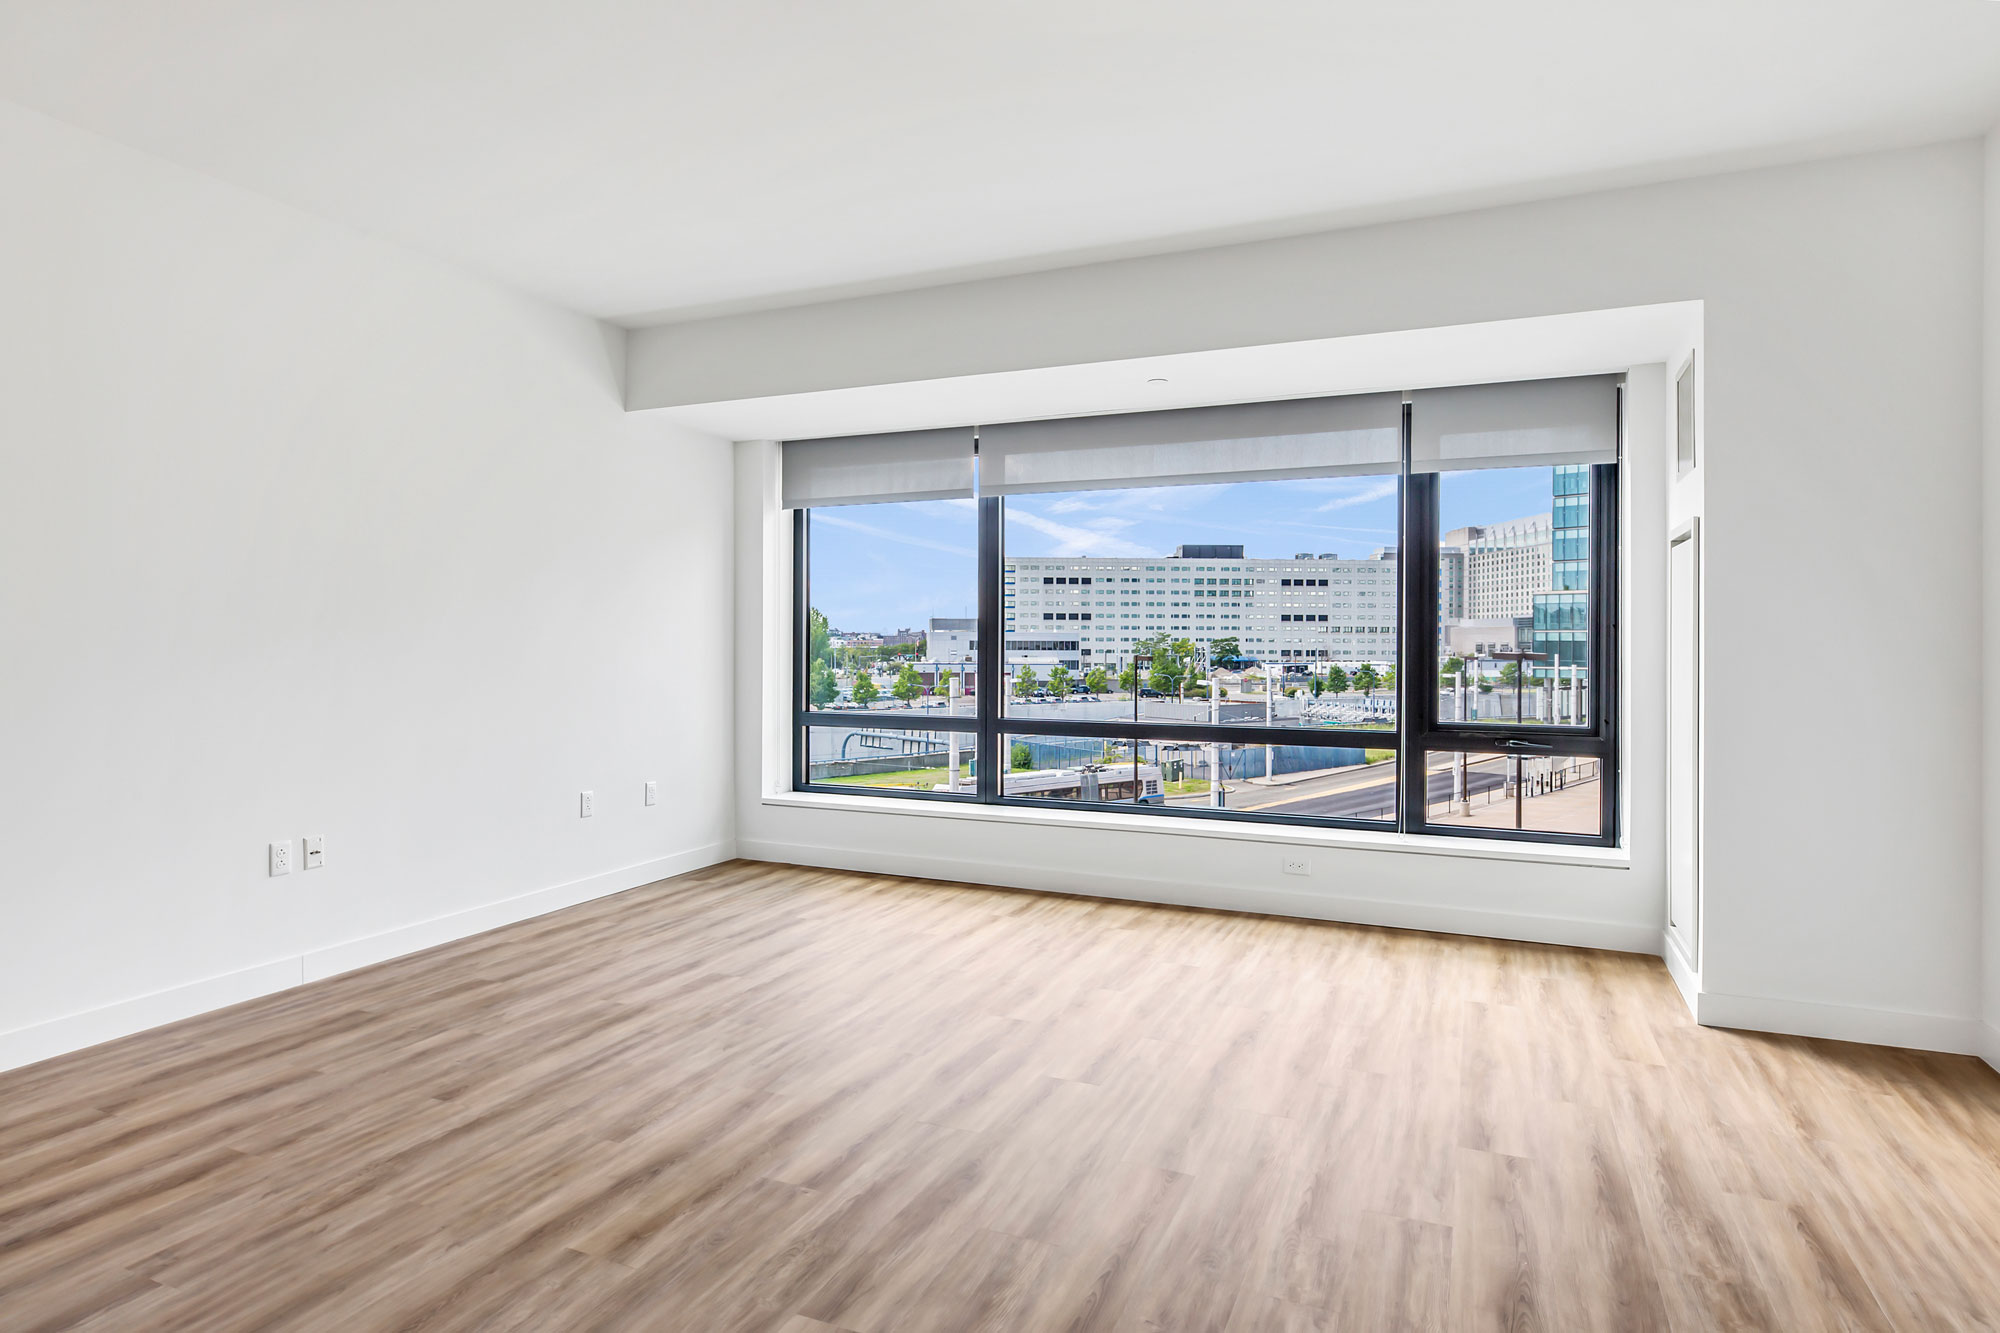 Empty living area with wood floors and large window with city view